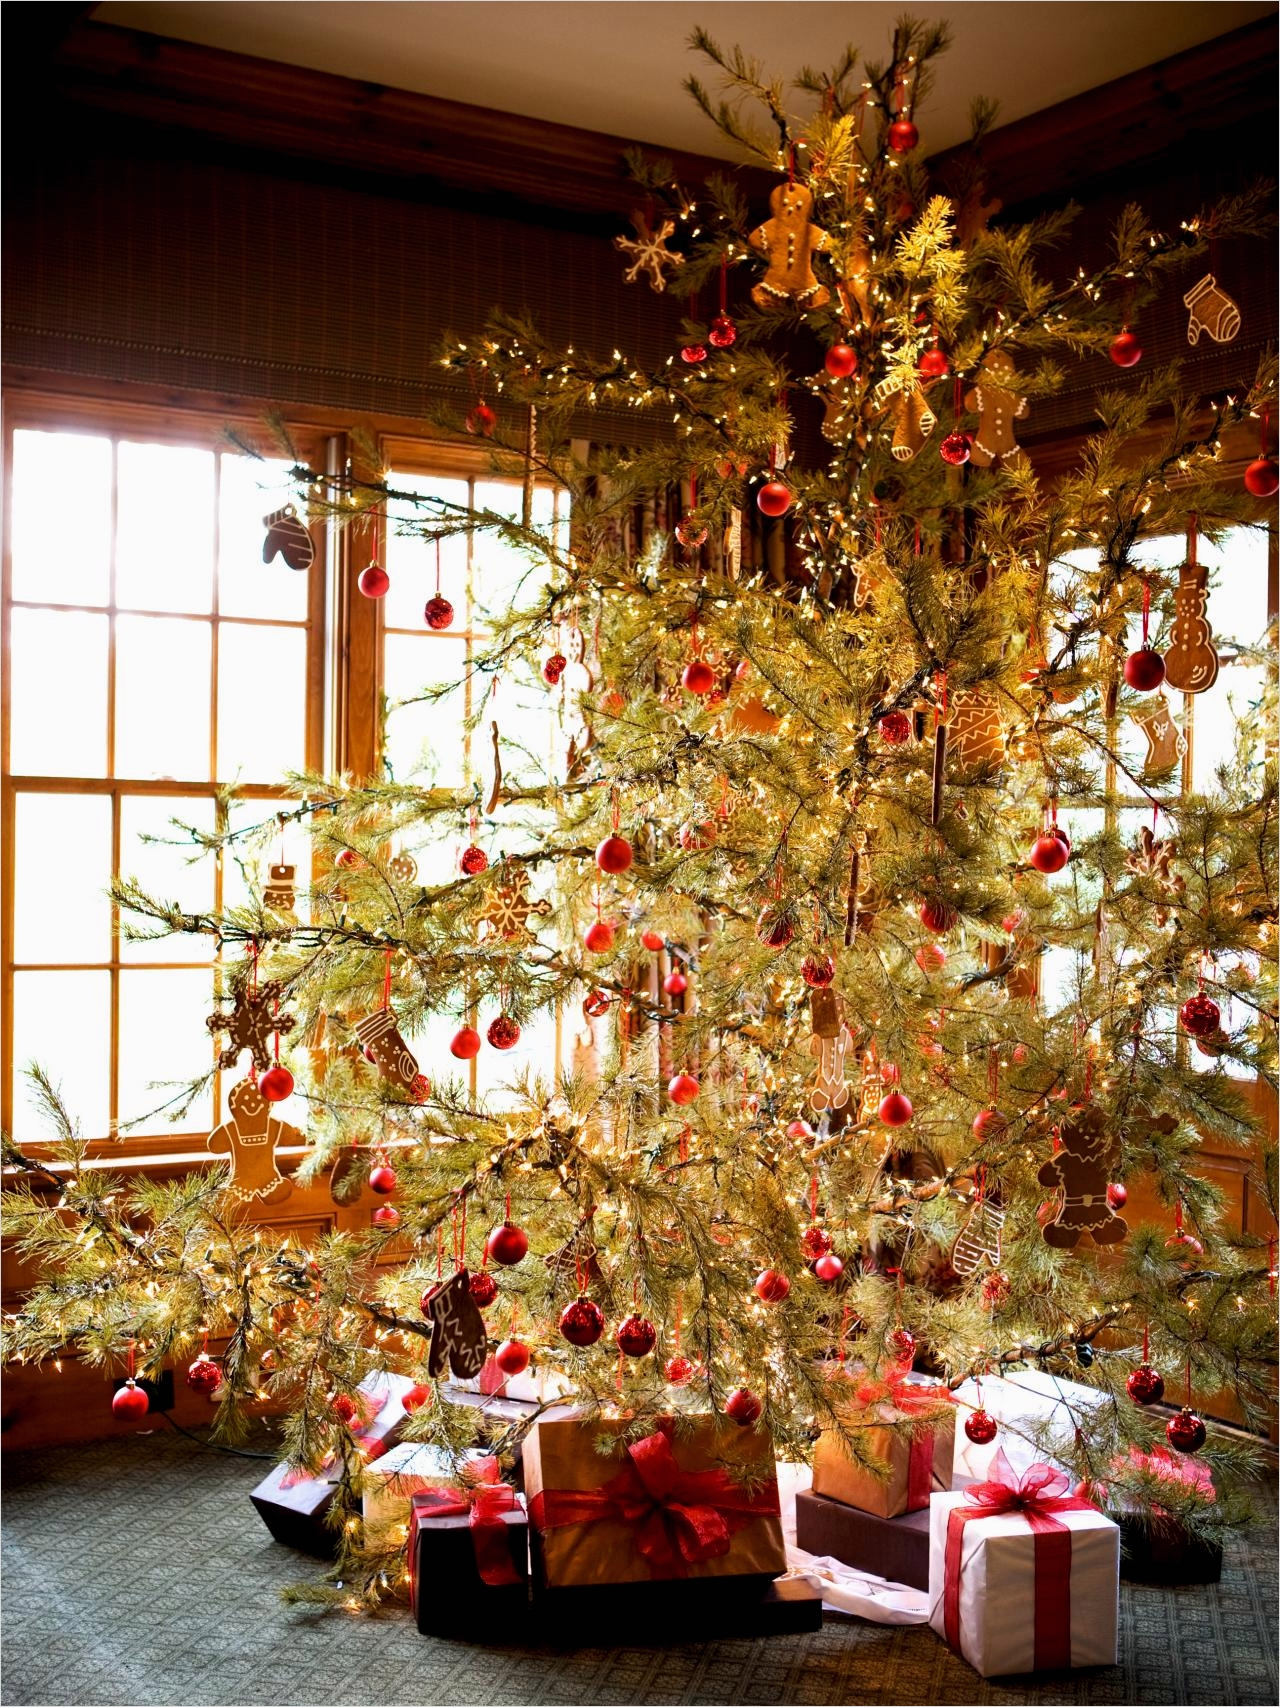 45 Diy Rustic Christmas Decorations 95 Rustic yet Elegant Mountain Inspired Christmas Decorating Ideas 7